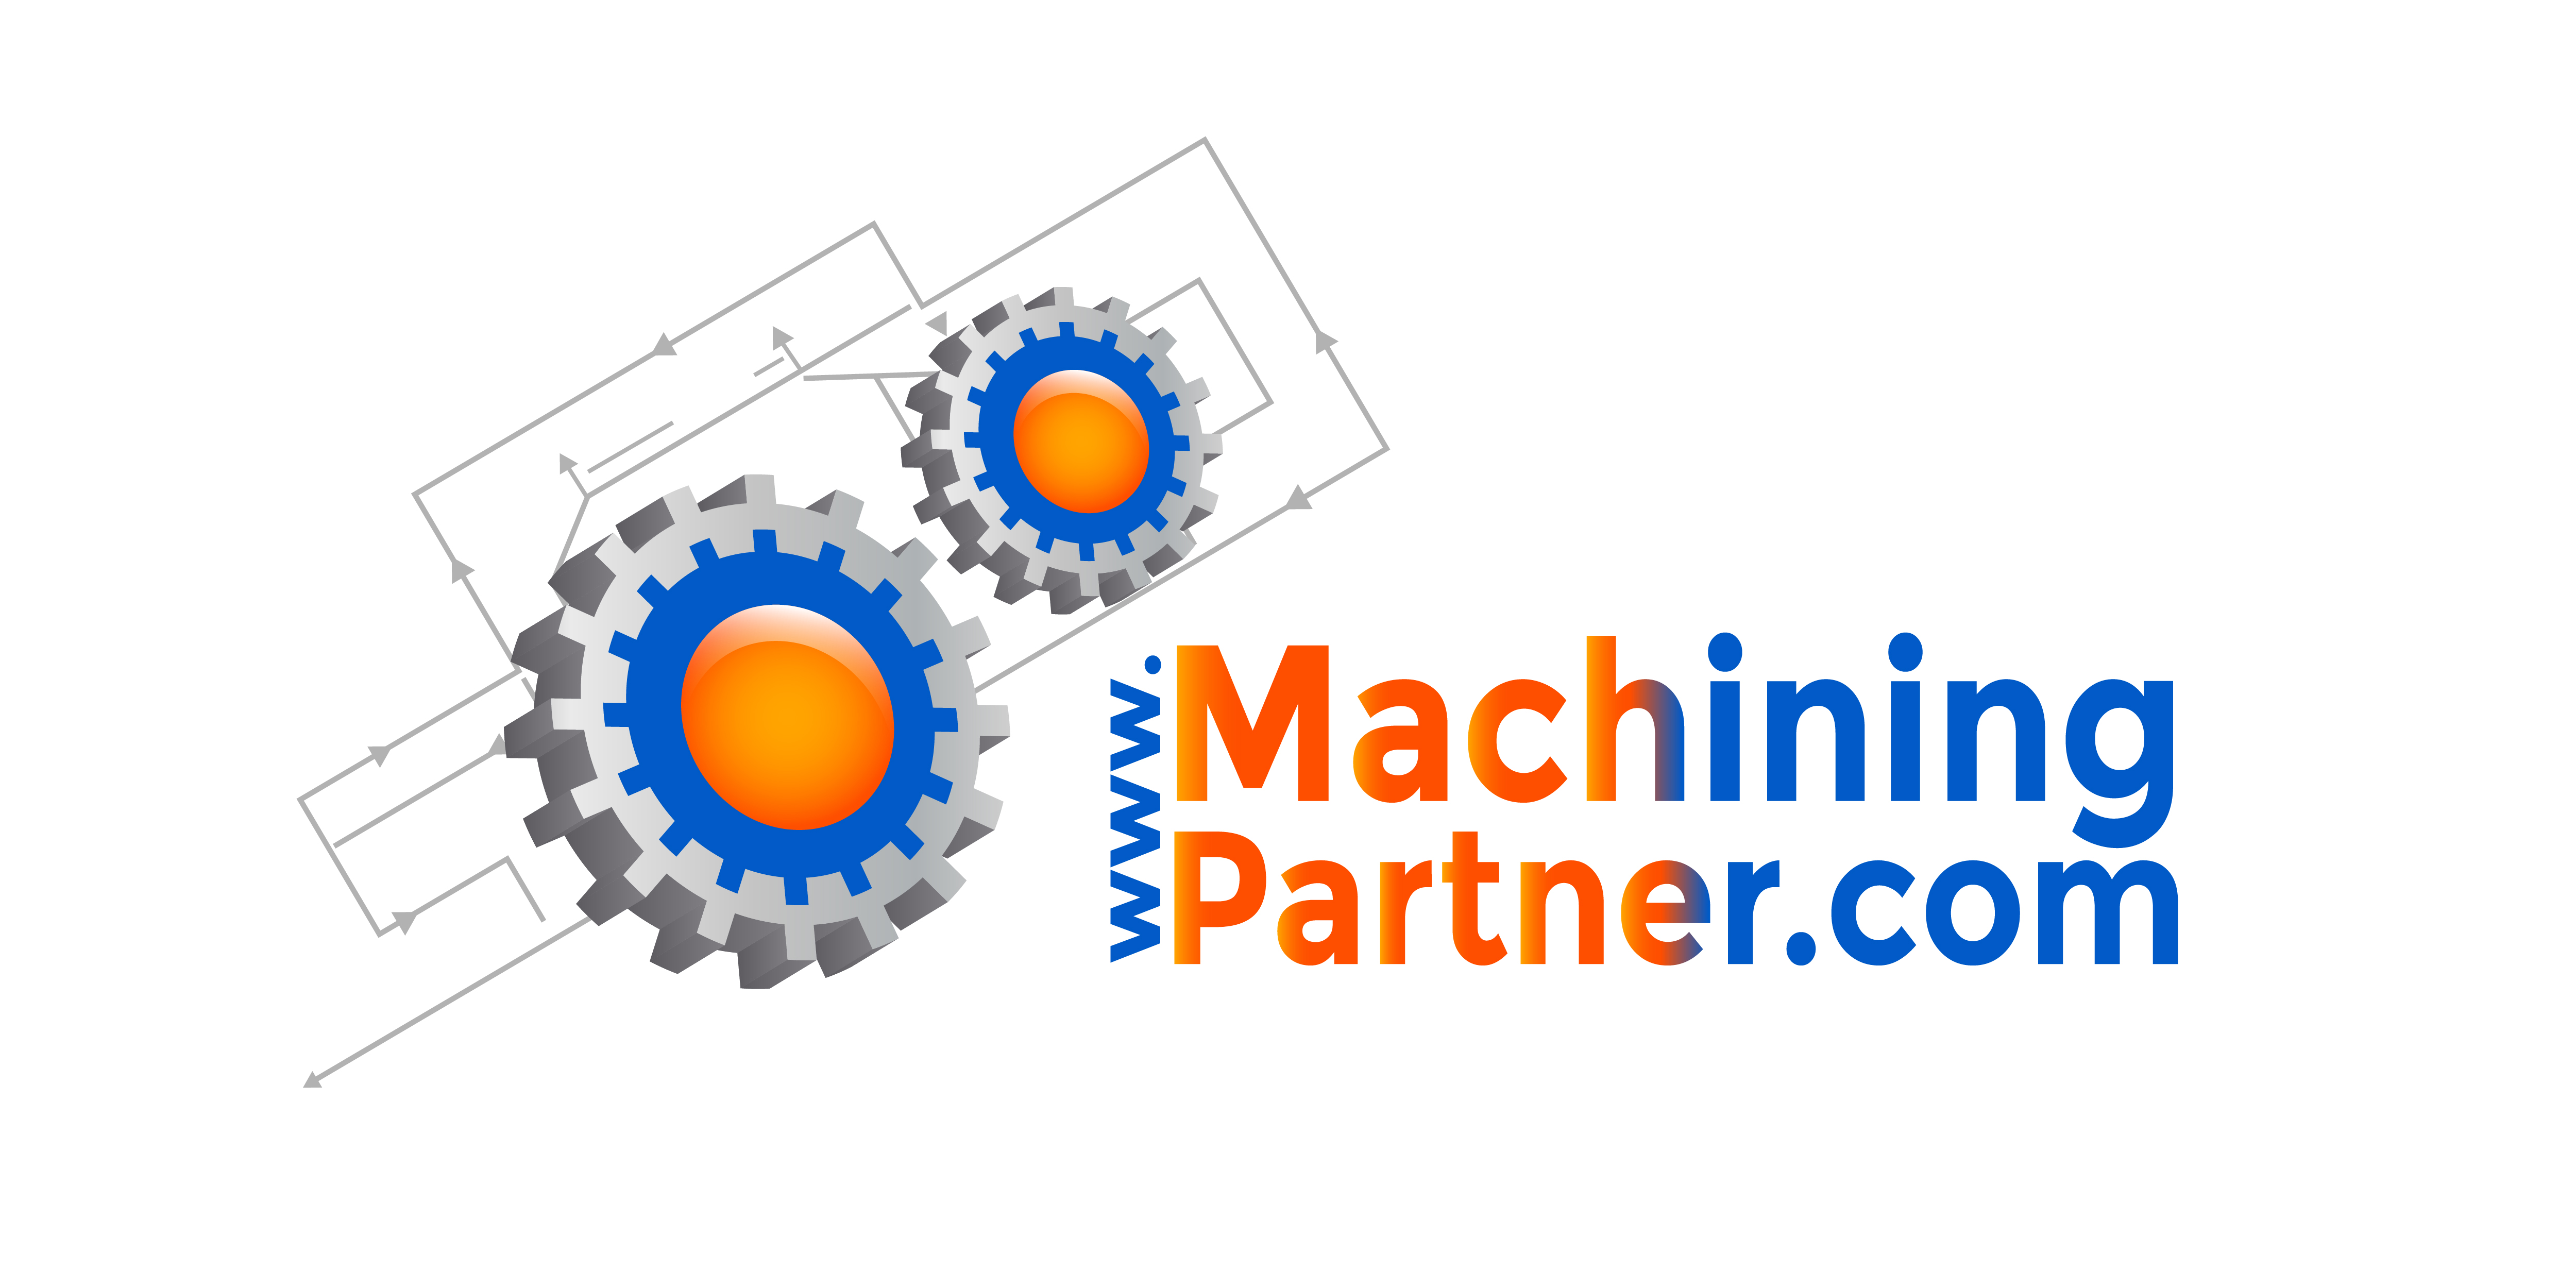 Machining Partner